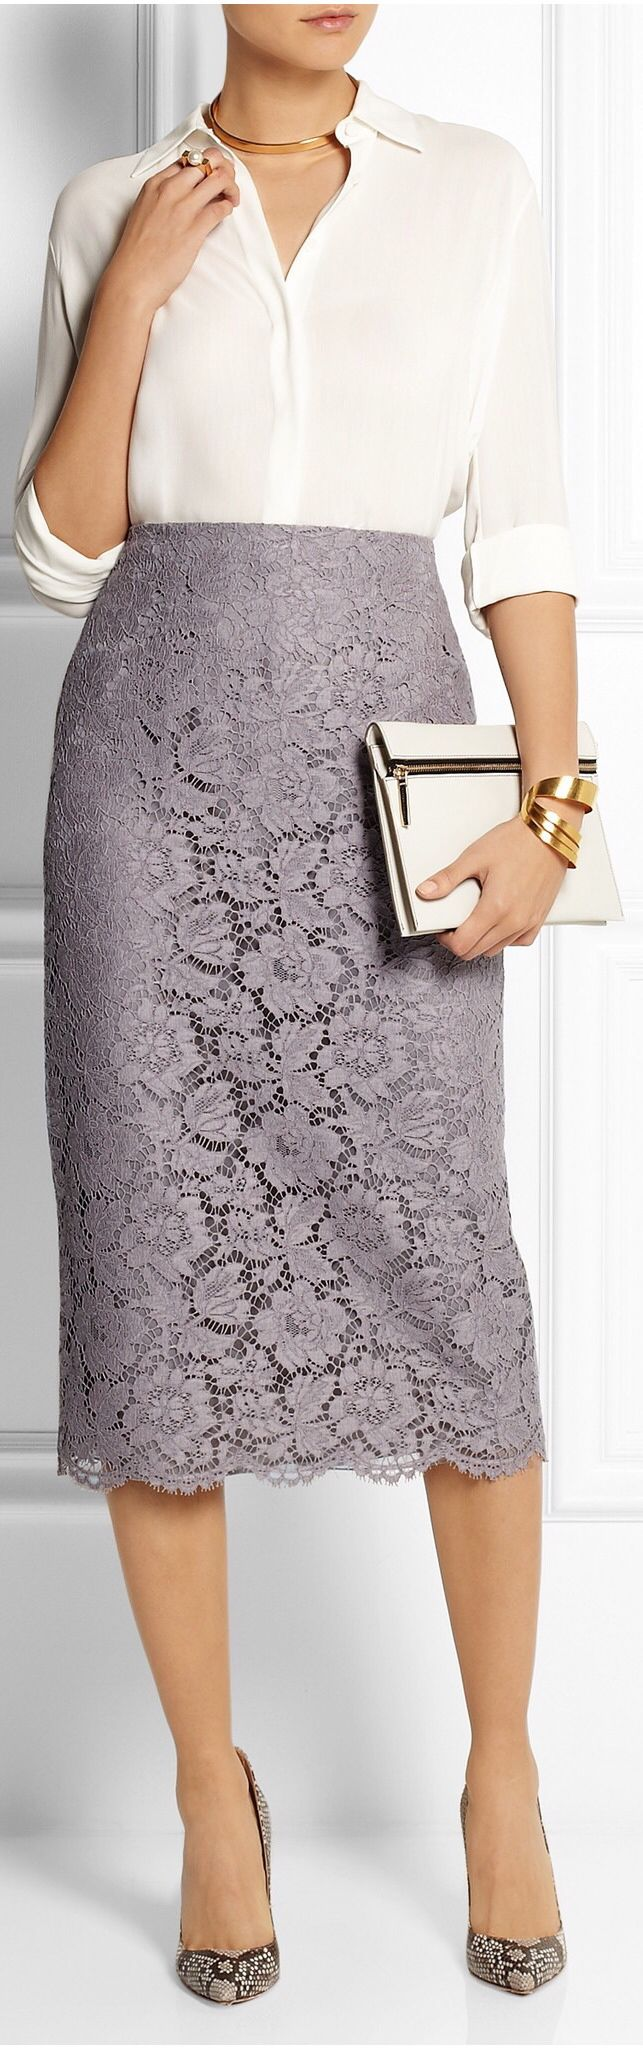 Not a fan of lace, but I love the shape of this skirt with a blouse - love the marilyn monroe style/look